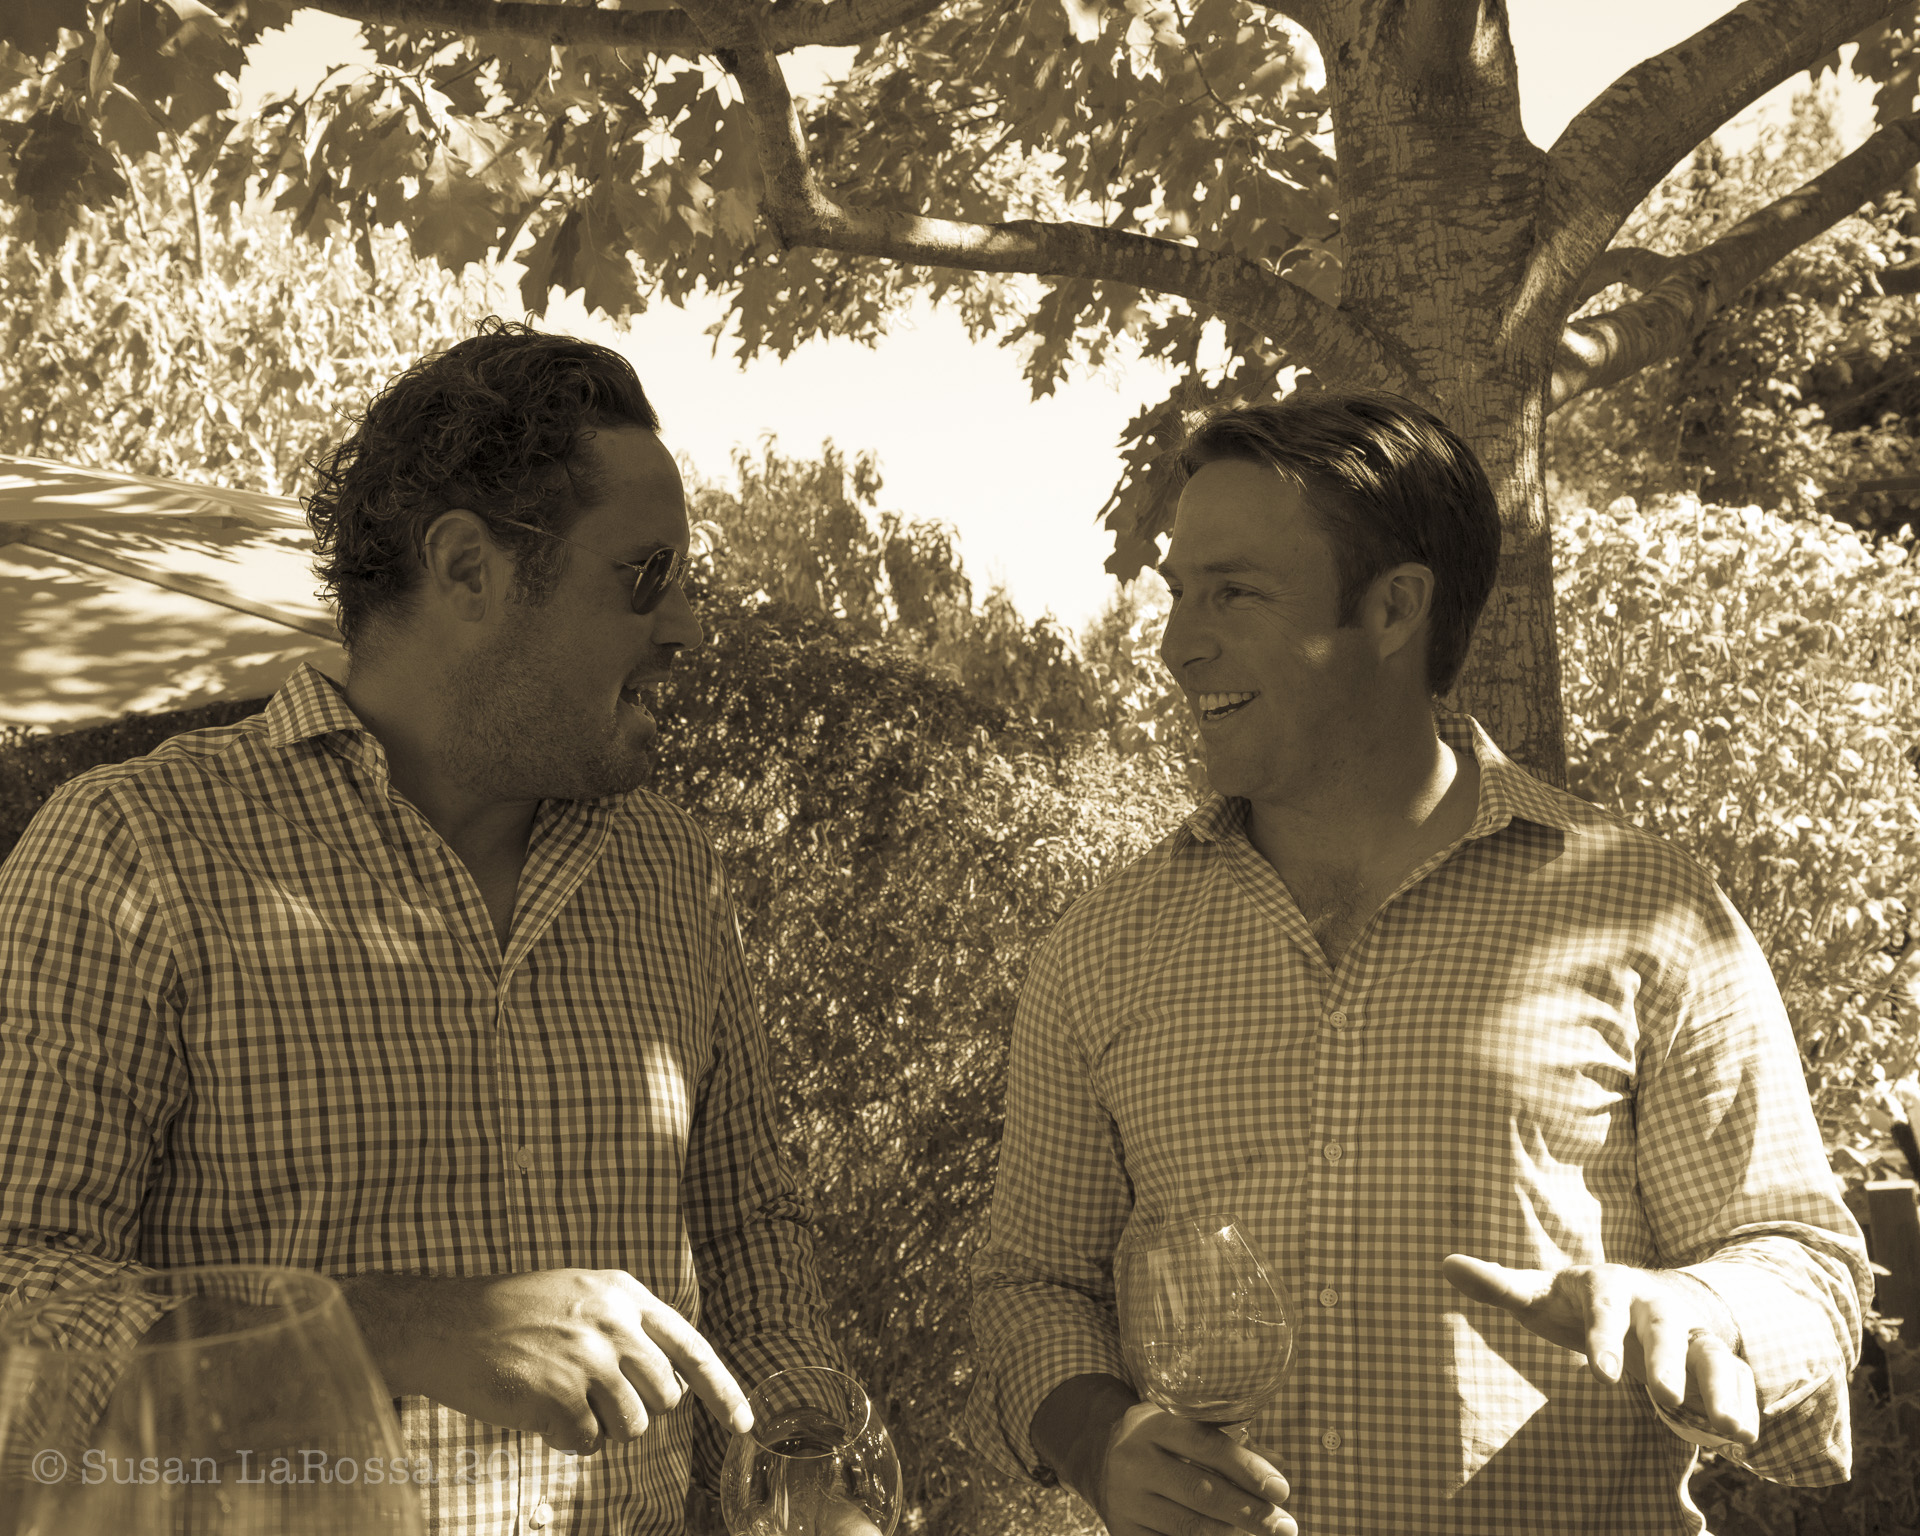 Winemaker Kenneth Juhasz and owner Chris Towt